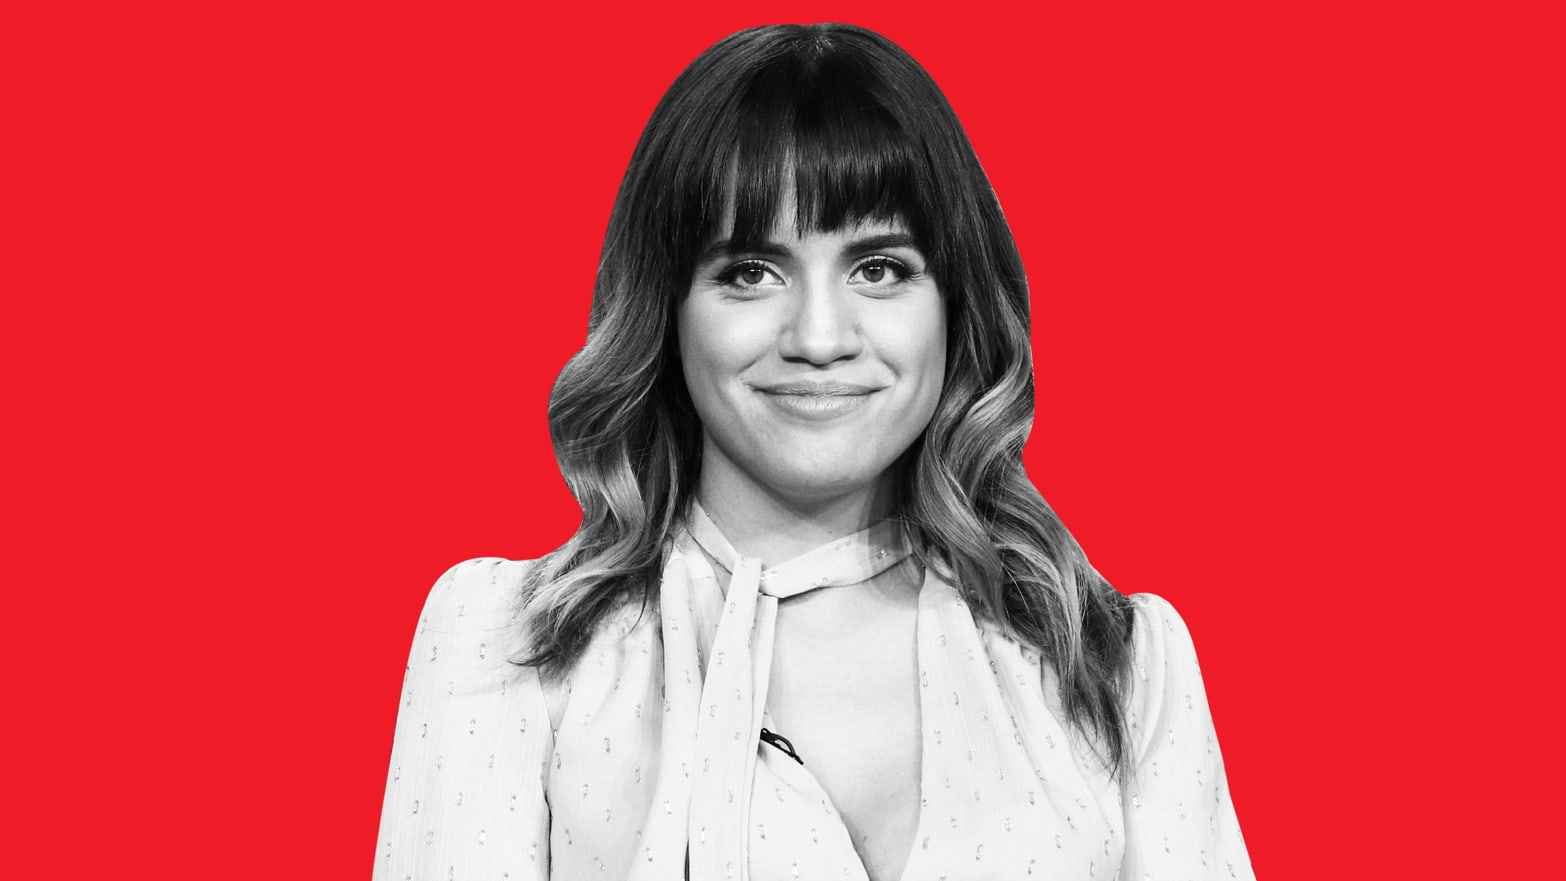 Natalie Morales Calls Out NBC for Canceling 'Abby's': 'So Much for Diversity!'